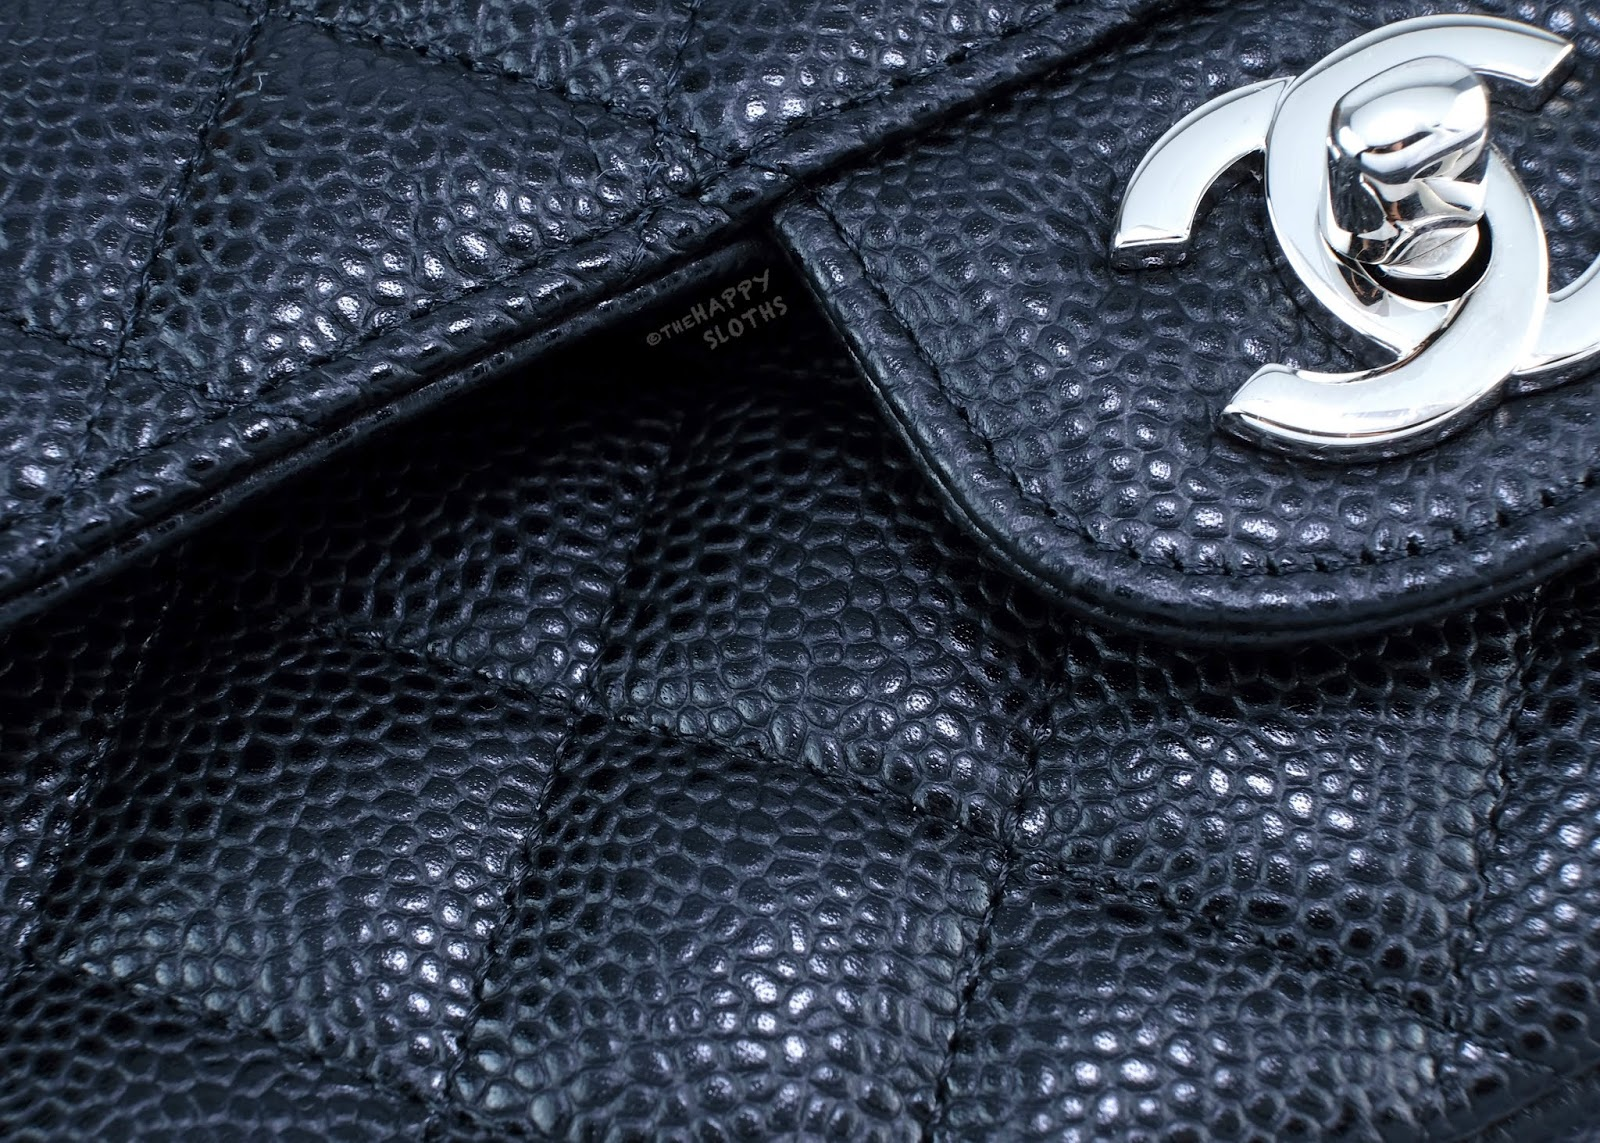 Chanel | Medium Classic Flap Handbag in Black Caviar Leather with Silver Hardware | Grained Calfskin: Review